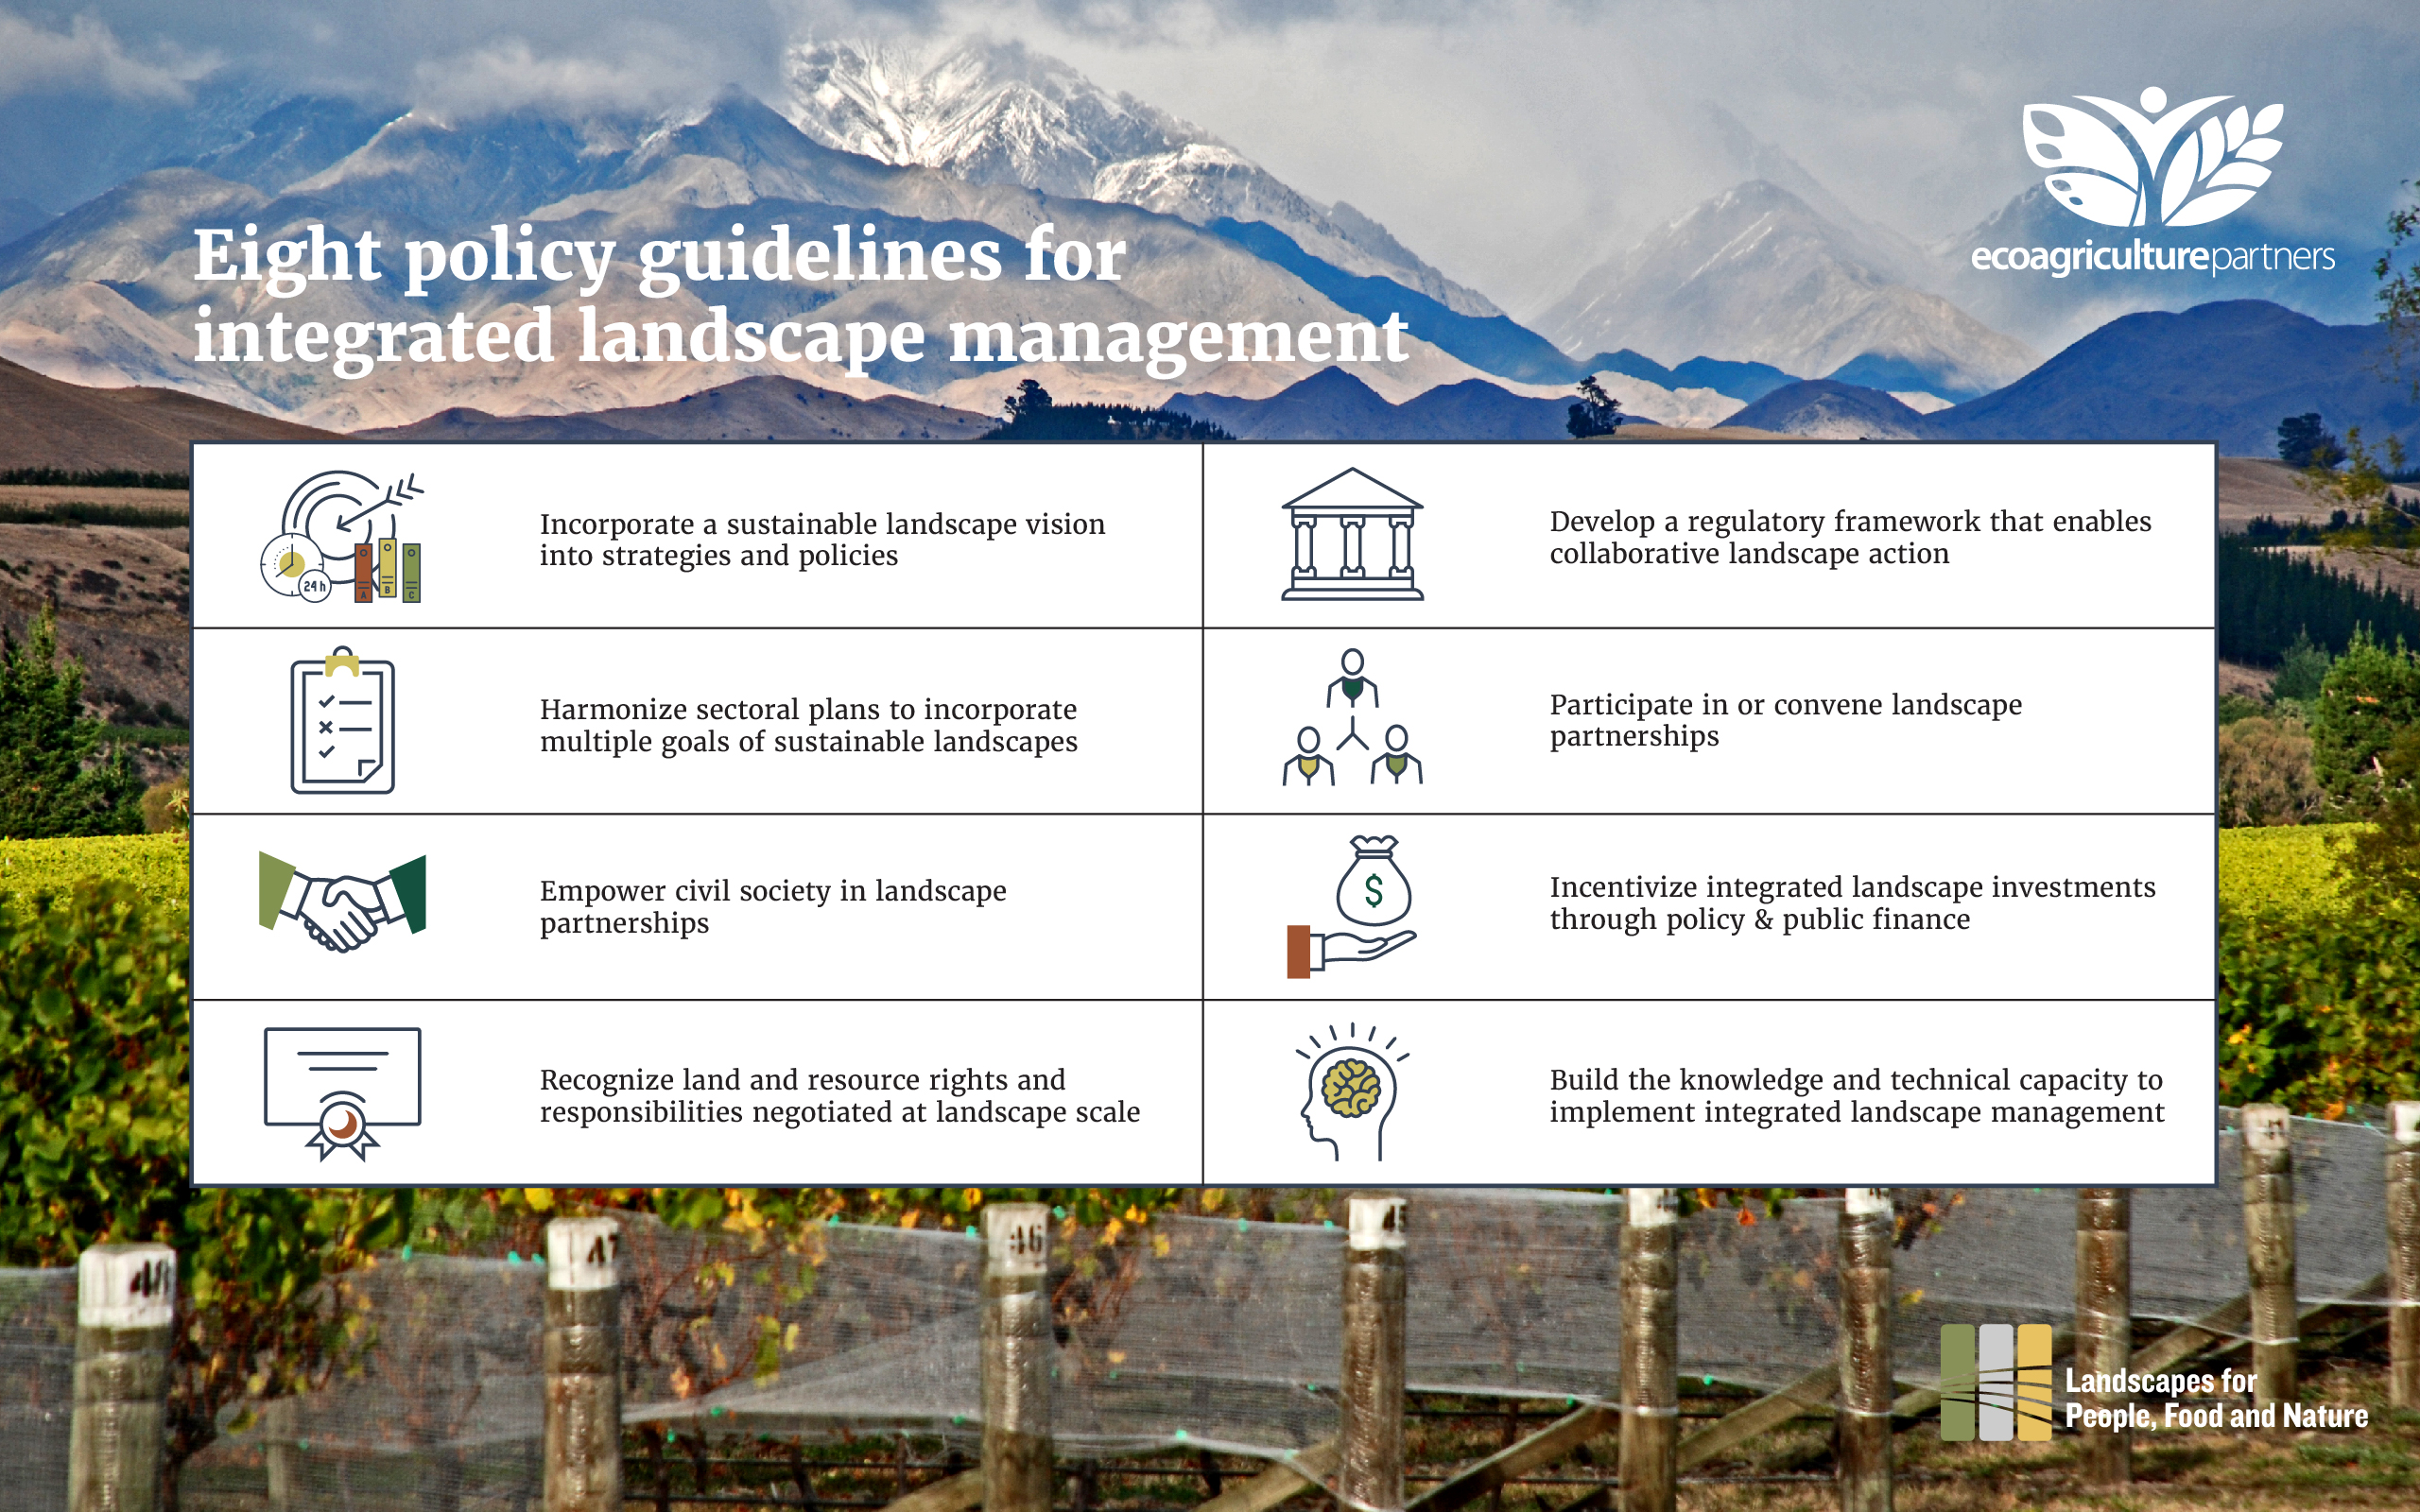 A summary of the eight categories of public policy action that can advance integrated landscape management to support achieving the SDGs. Read on for real-world examples of each category.